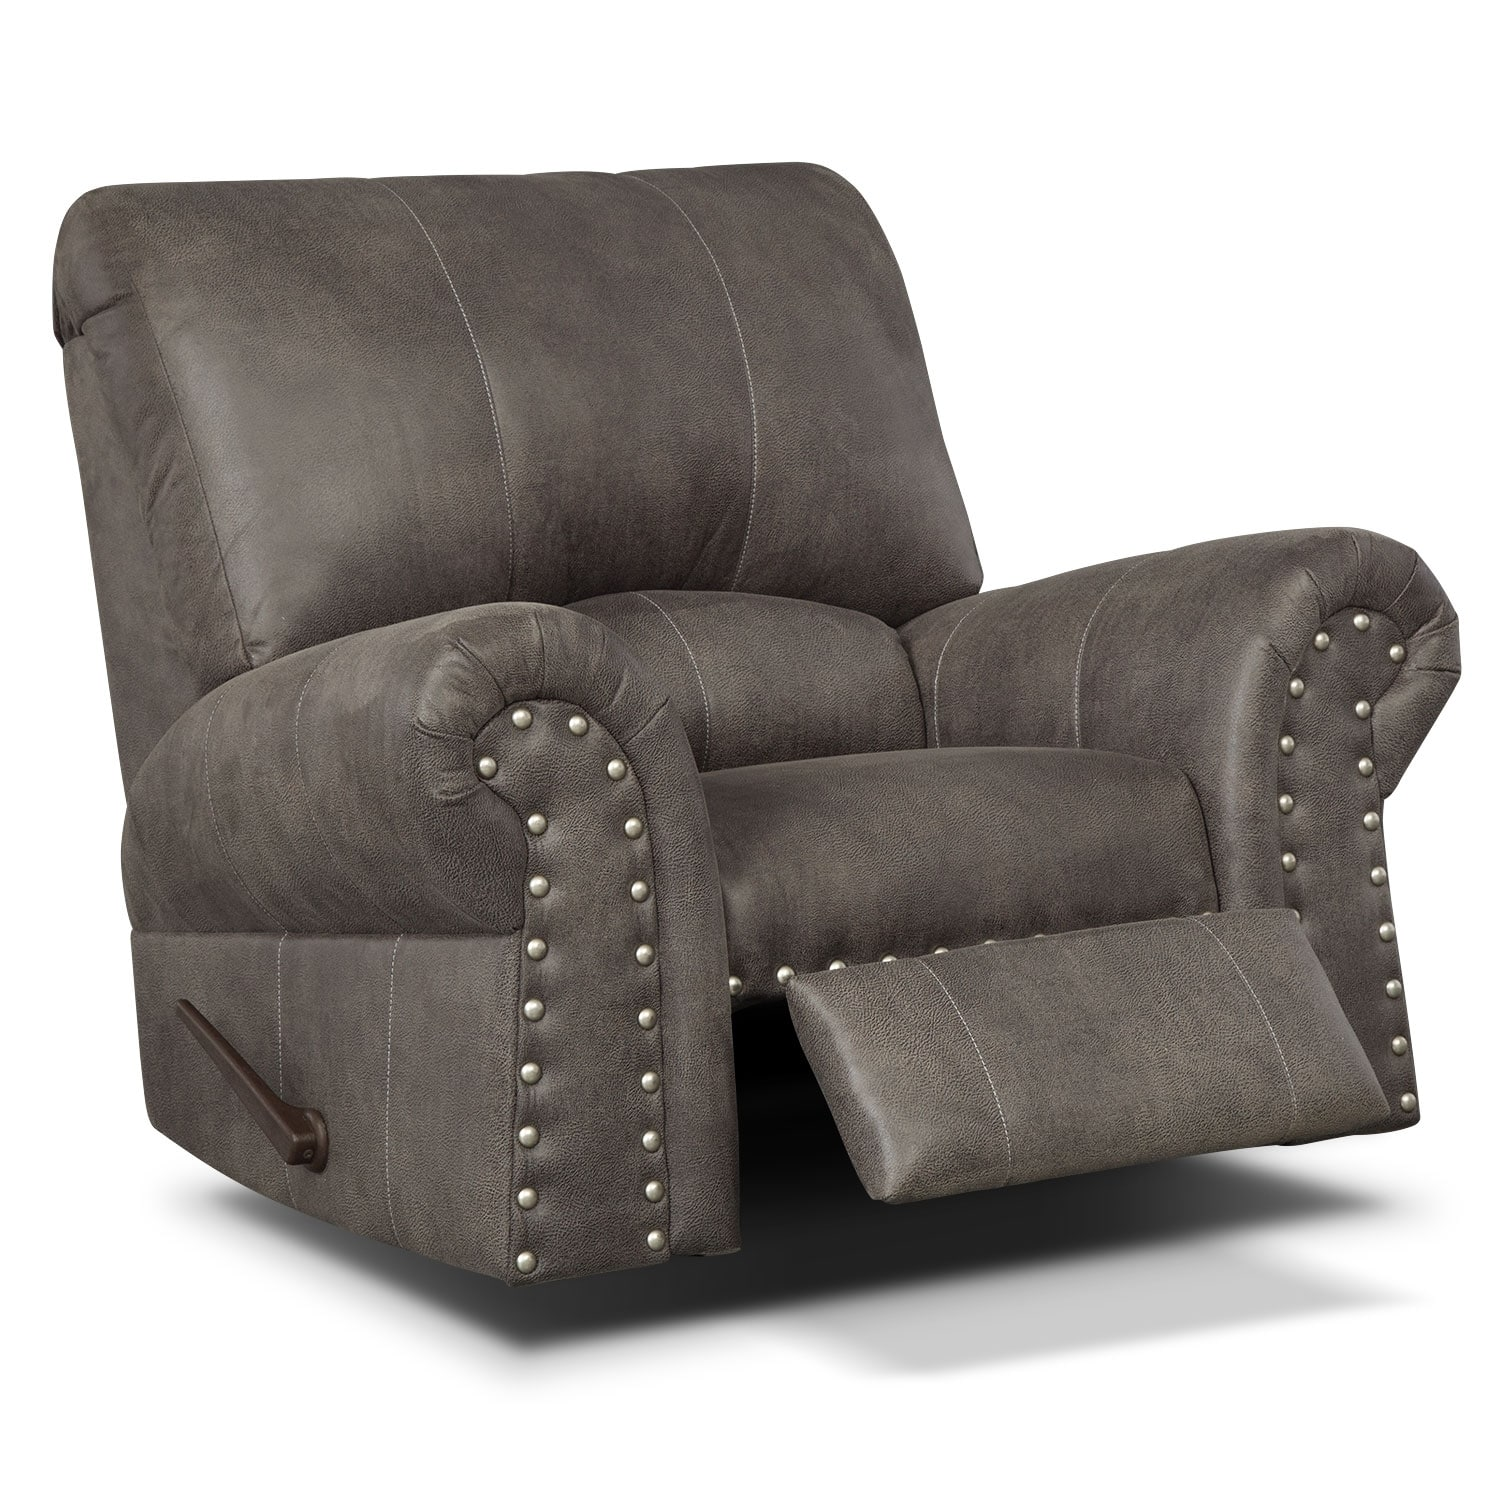 Living Room Furniture - Burlington Recliner - Steel